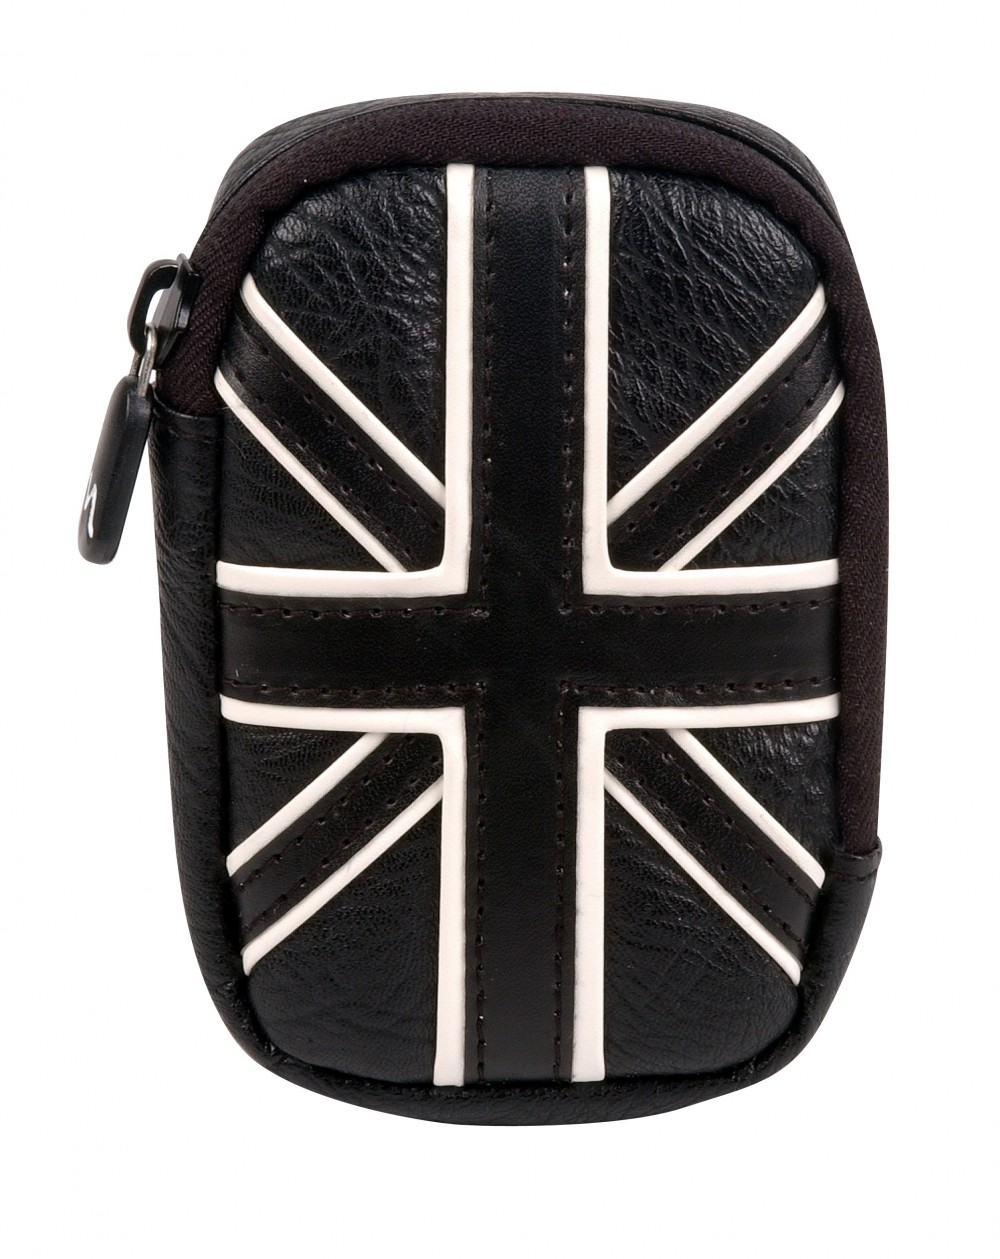 UK BLACK EDITION-ETUI APN, L